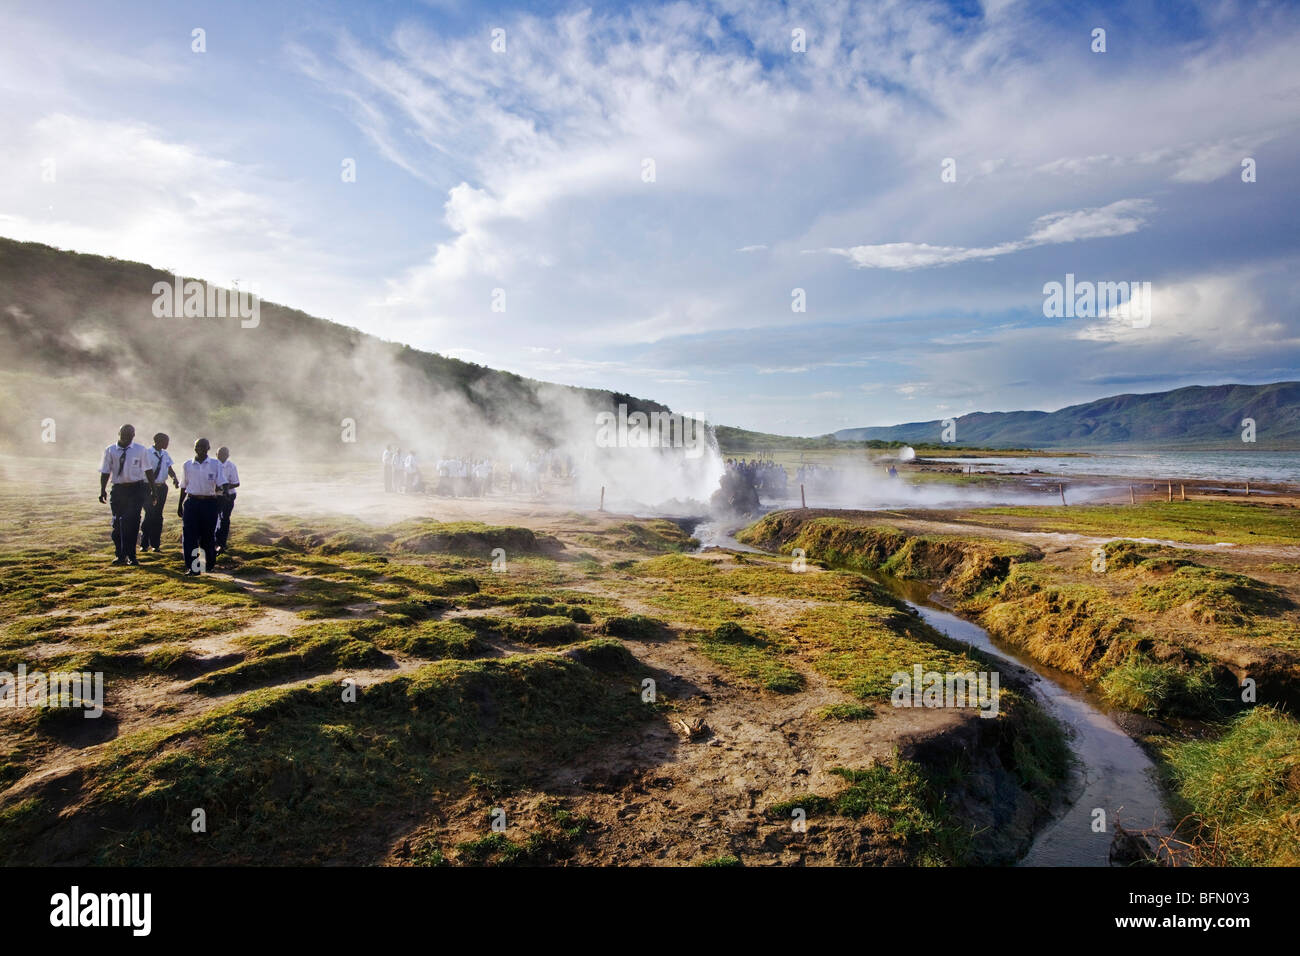 Kenya, Bogoria. School children on an official school outing visit the geysers and hot springs beside Lake Bogoria. - Stock Image